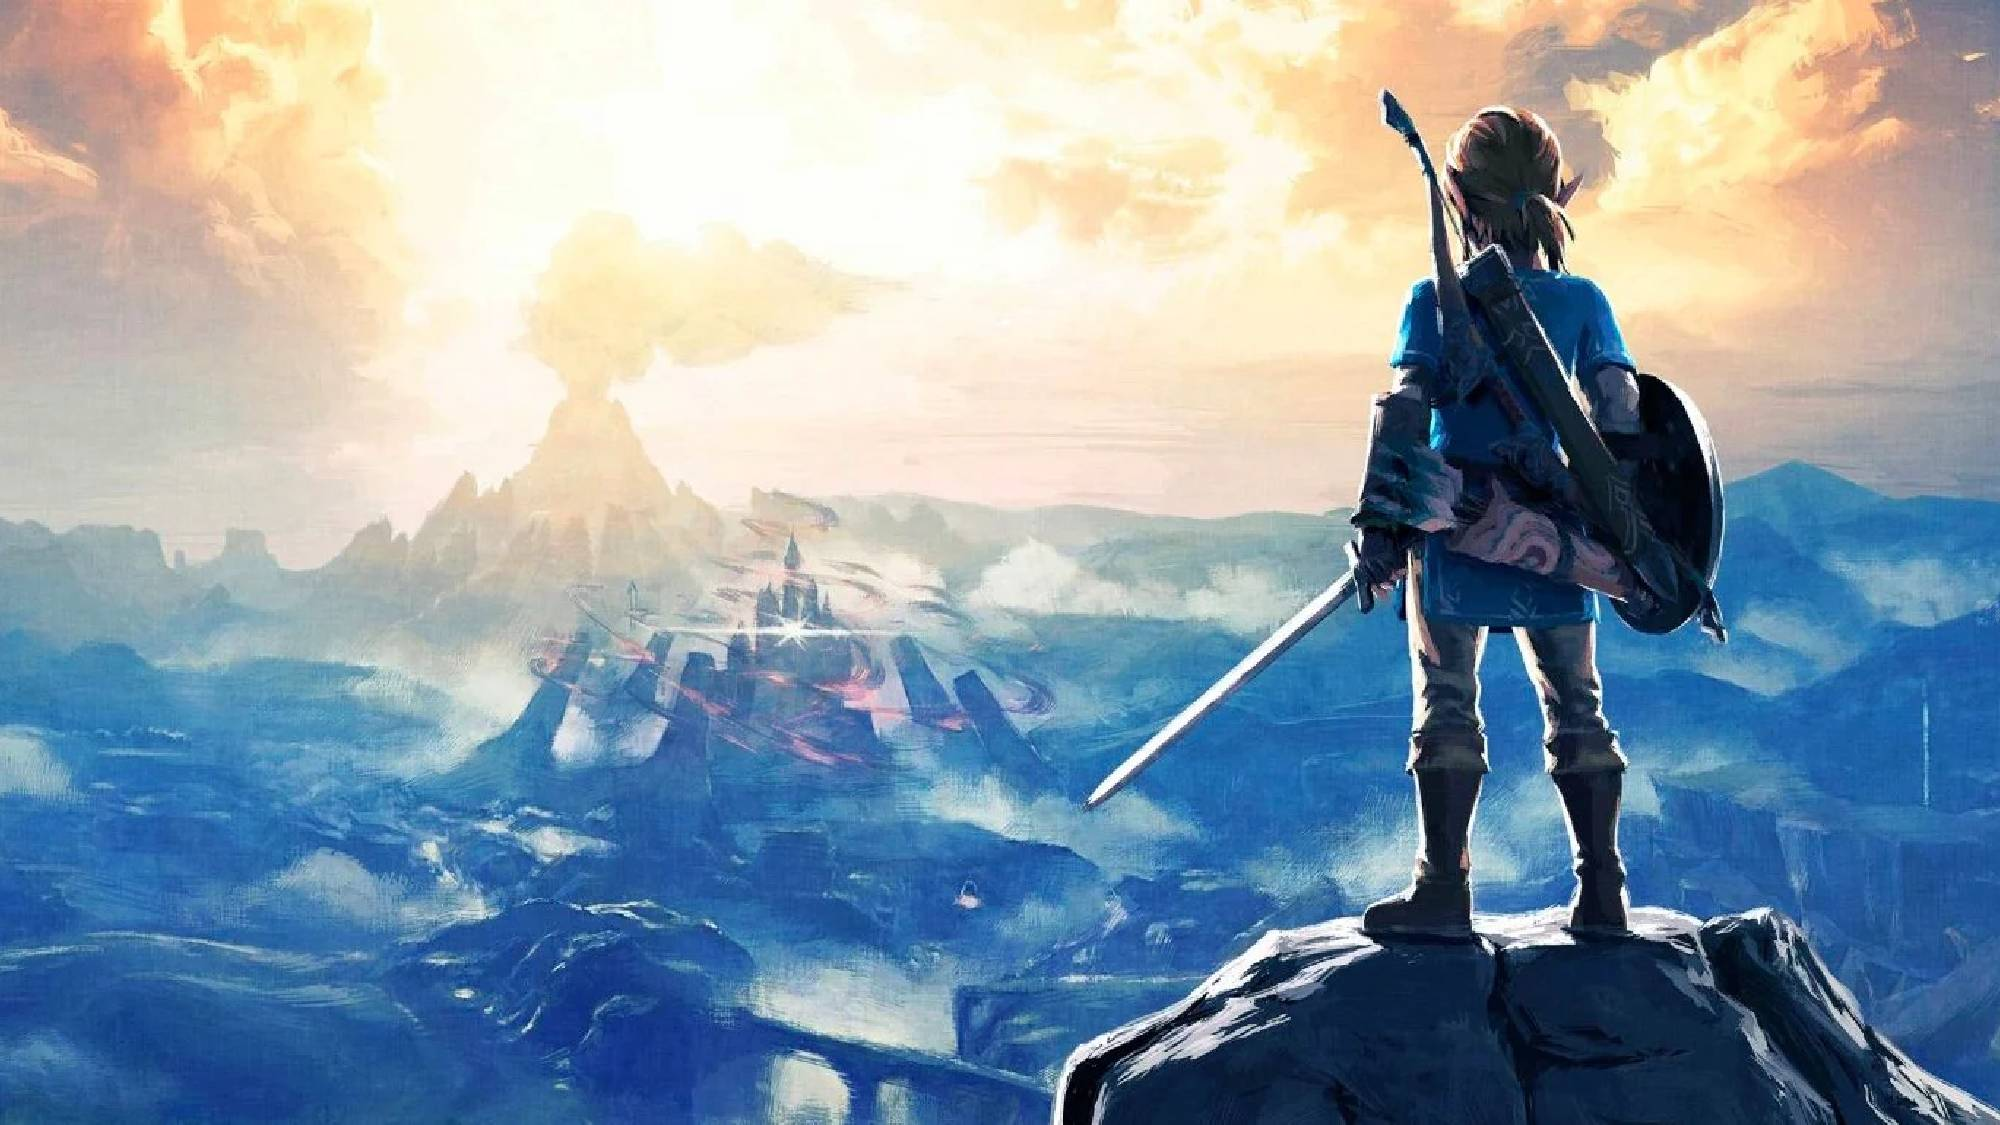 Breath of the Wild 2: Release date, trailer, pre-orders and latest news |  Tom's Guide